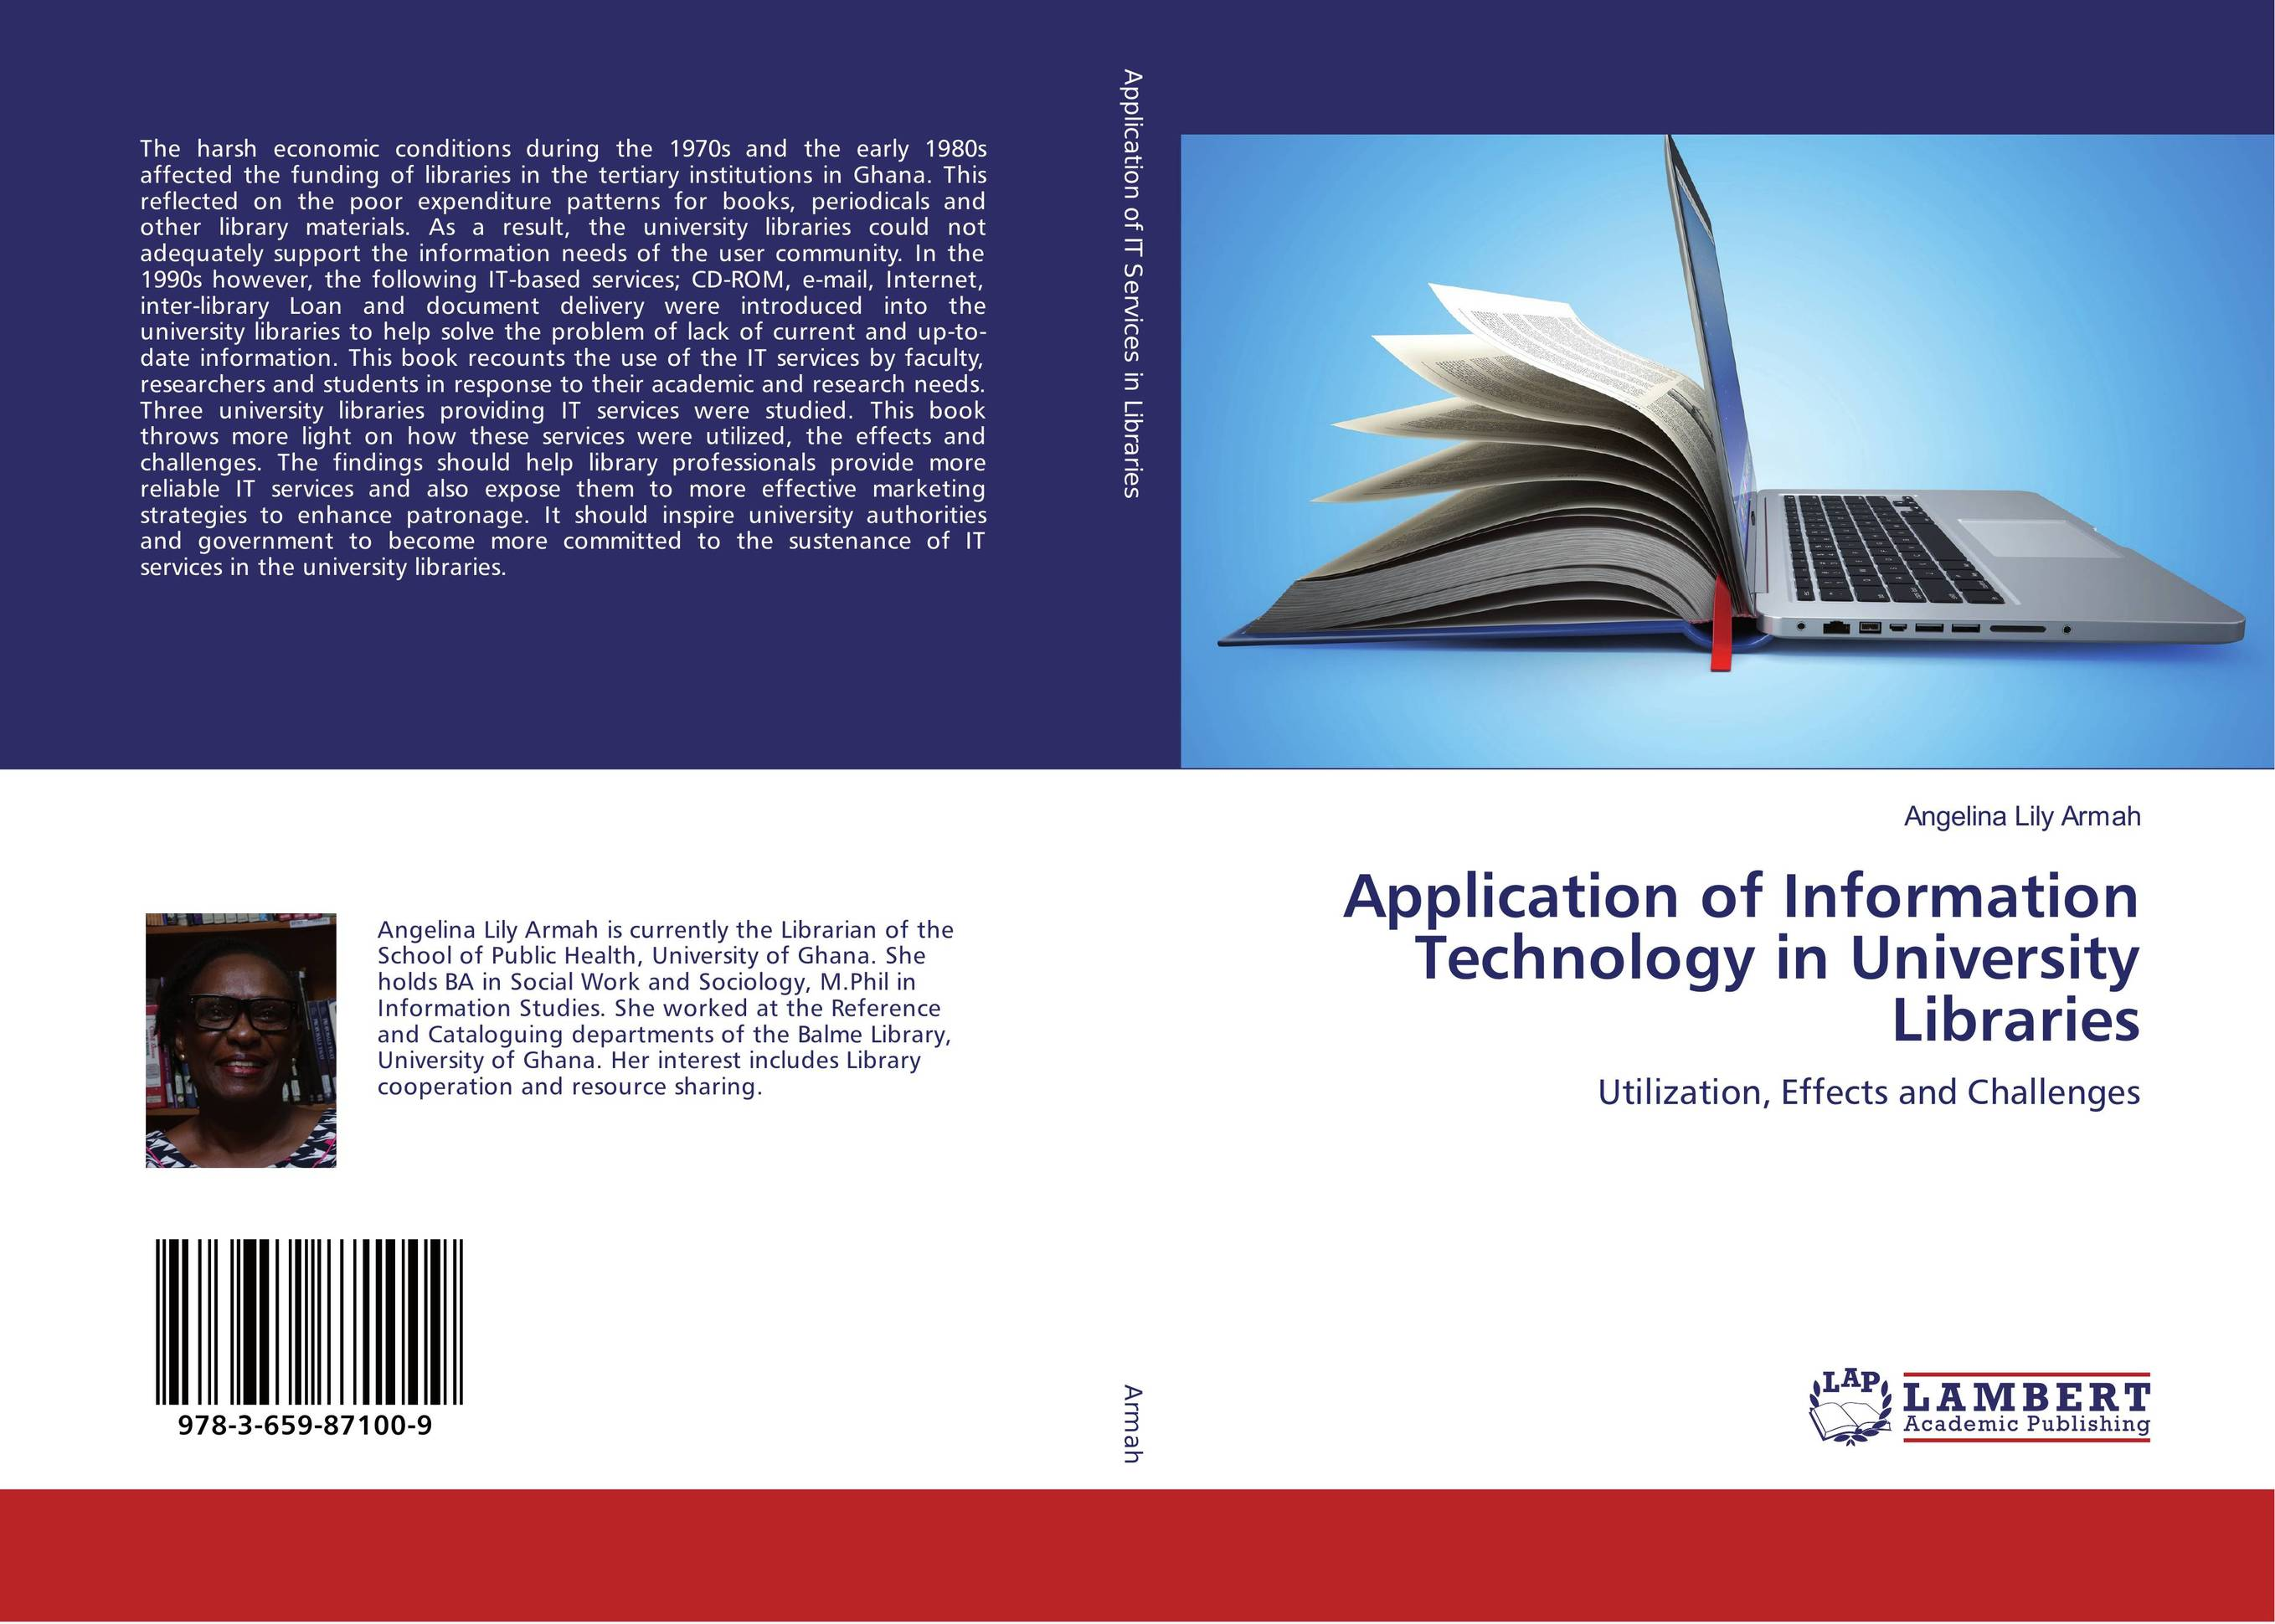 Application of Information Technology in University Libraries the application of global ethics to solve local improprieties